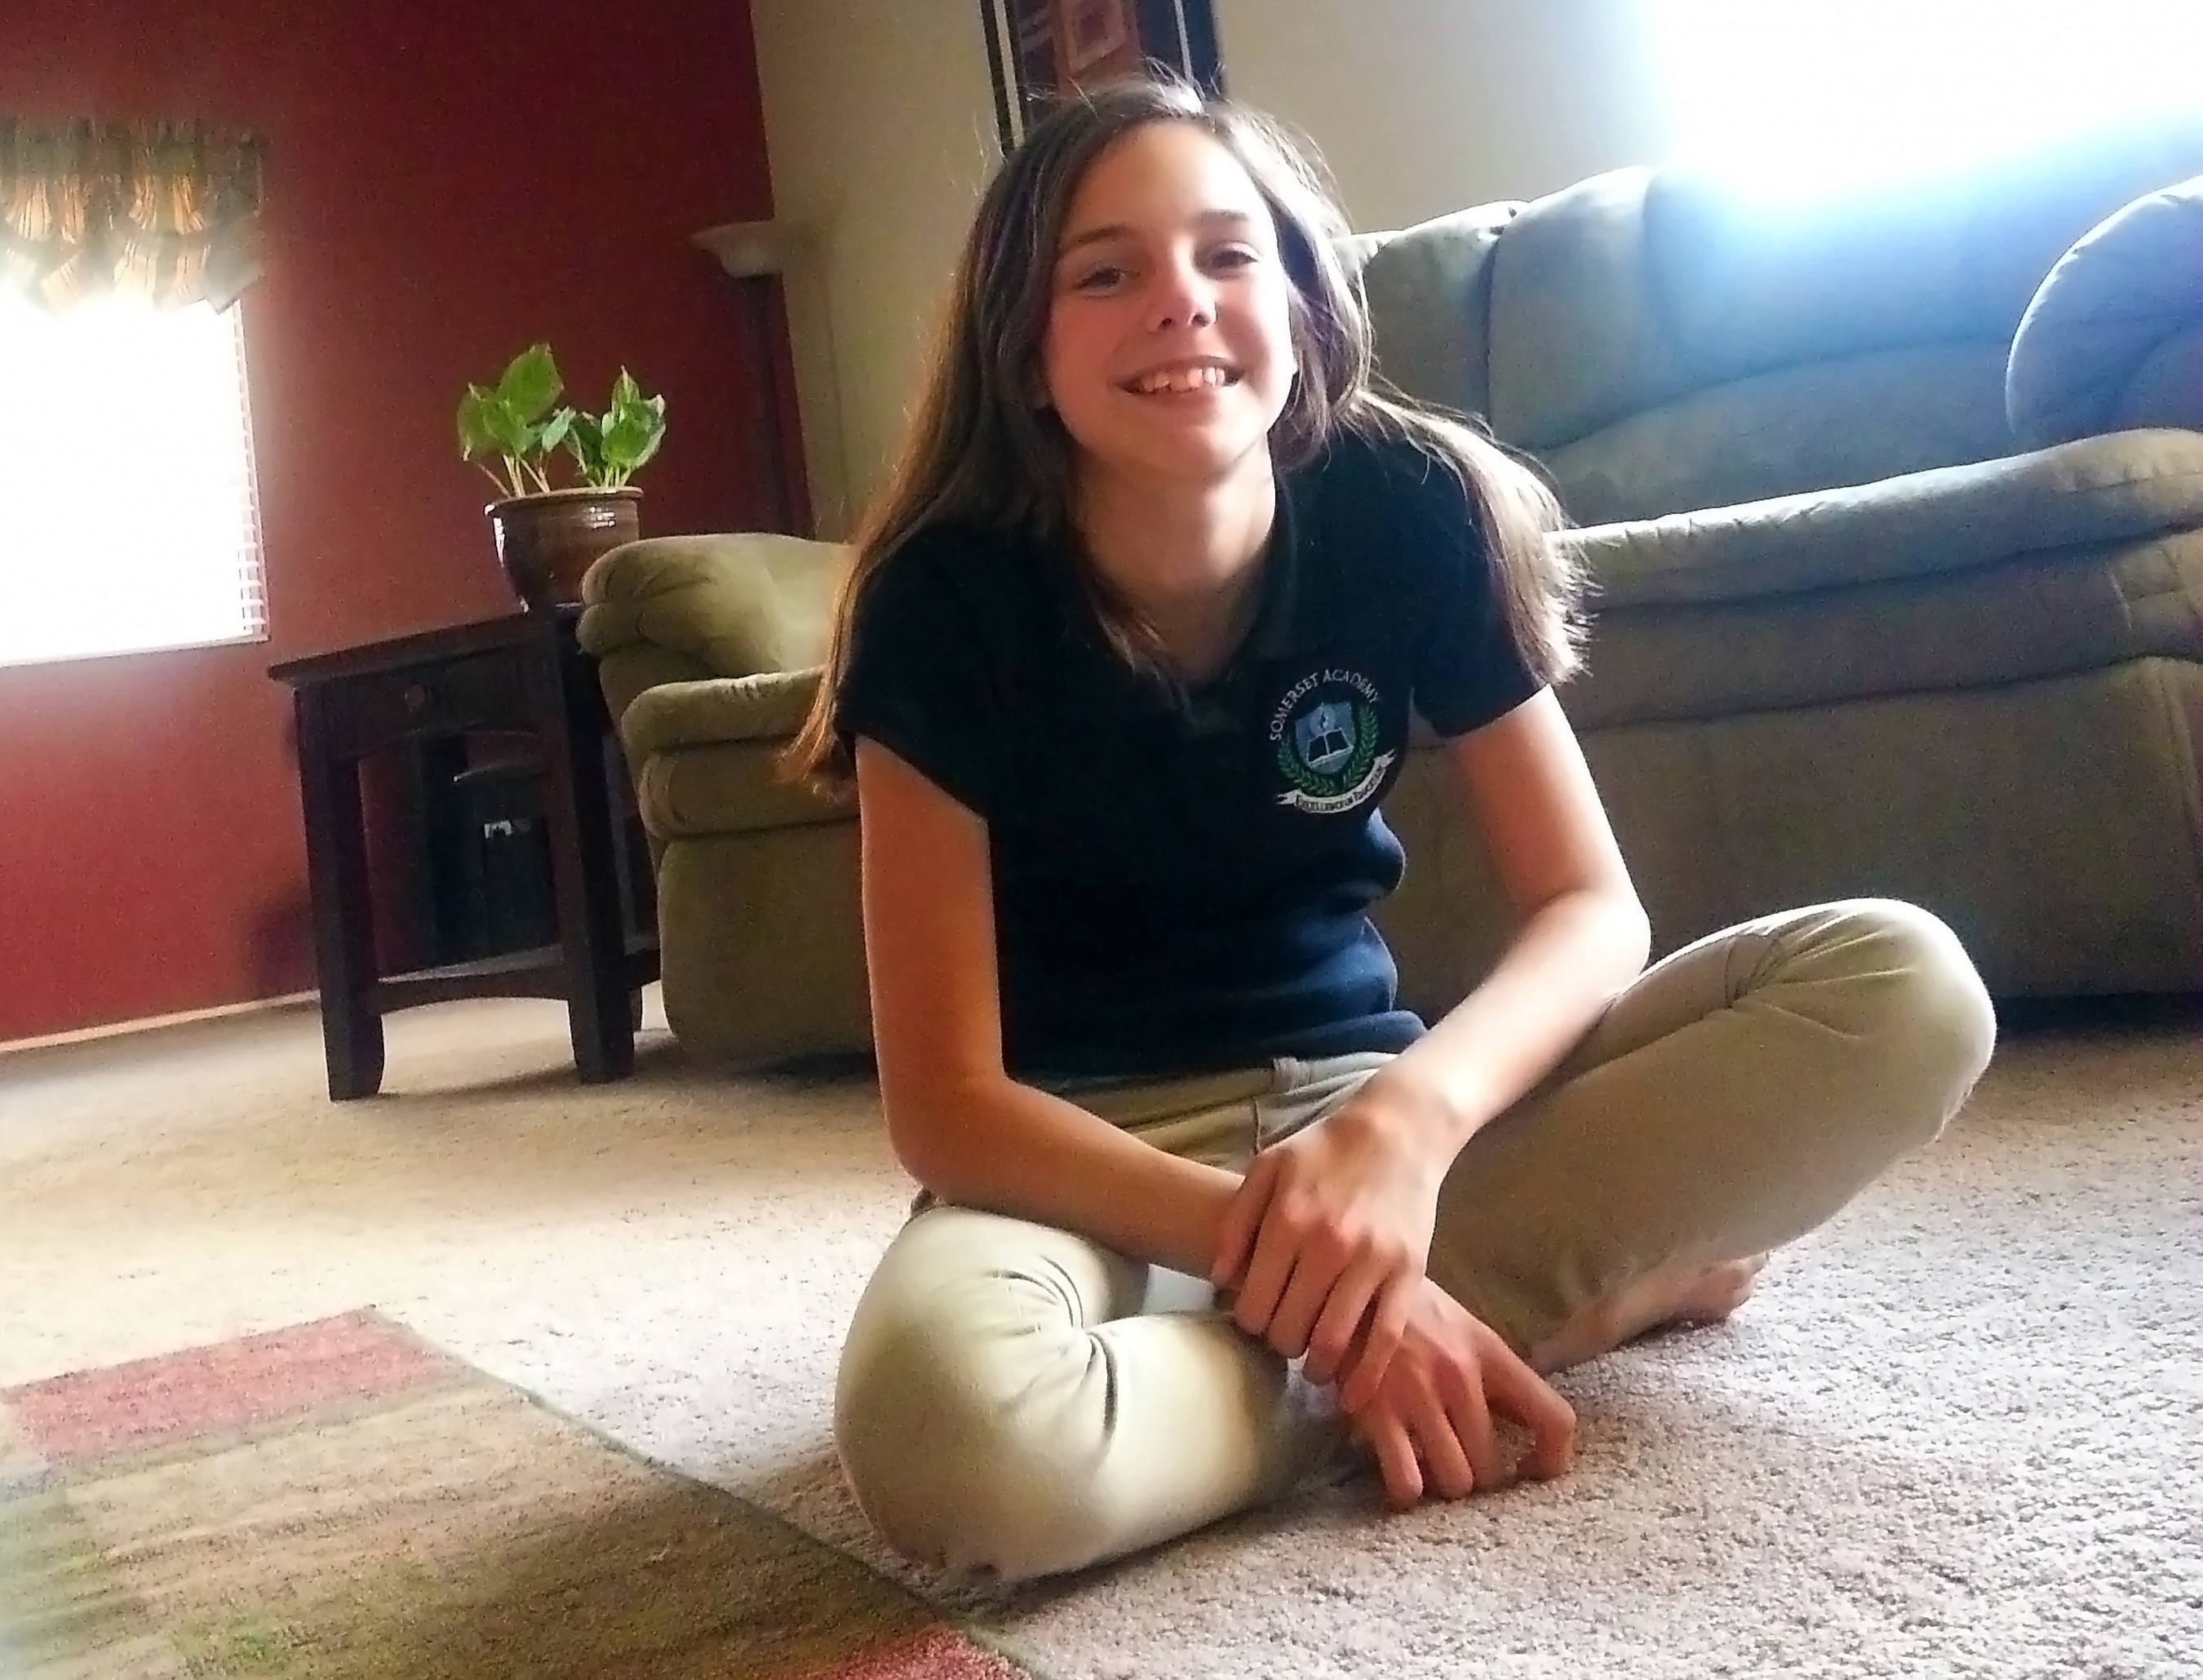 SCHOOL OFFICIALS APOLOGIZE FOR DENYING SIXTH-GRADER MACKENZIE FRAISER'S RIGHT TO USE JOHN 3:16 IN CLASS ASSIGNMENT